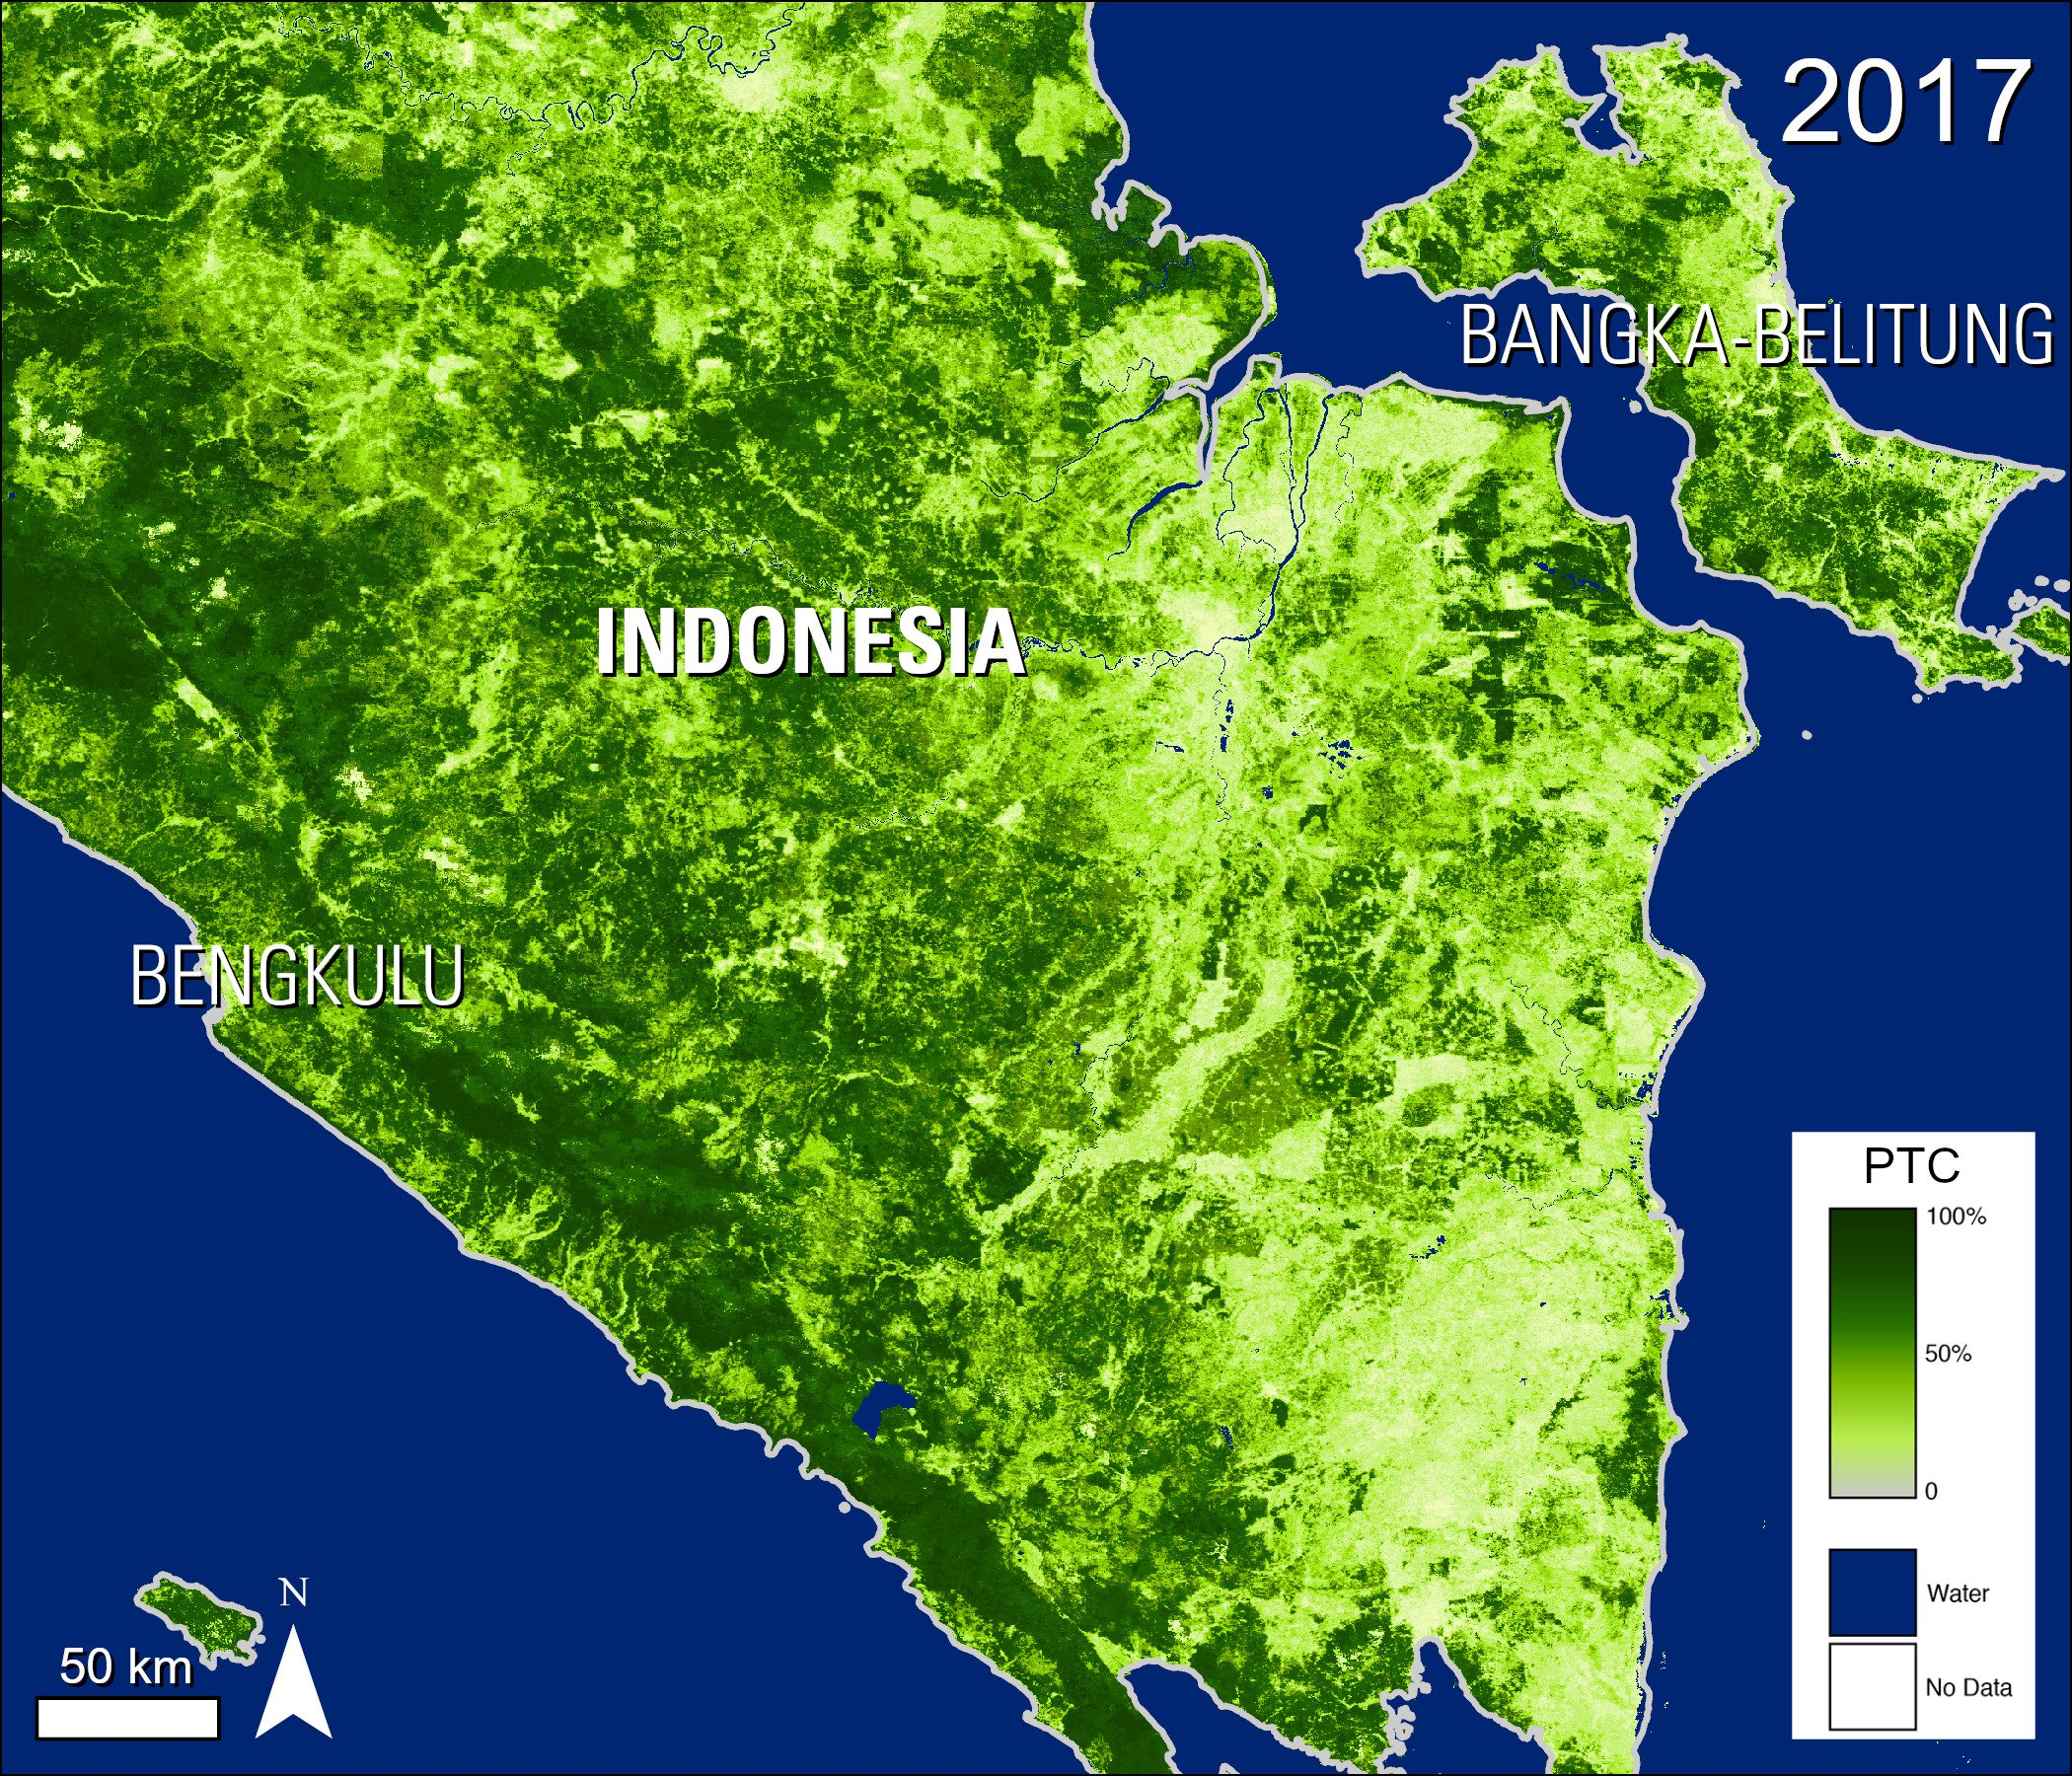 Percent Tree Cover map over part of Indonesia.